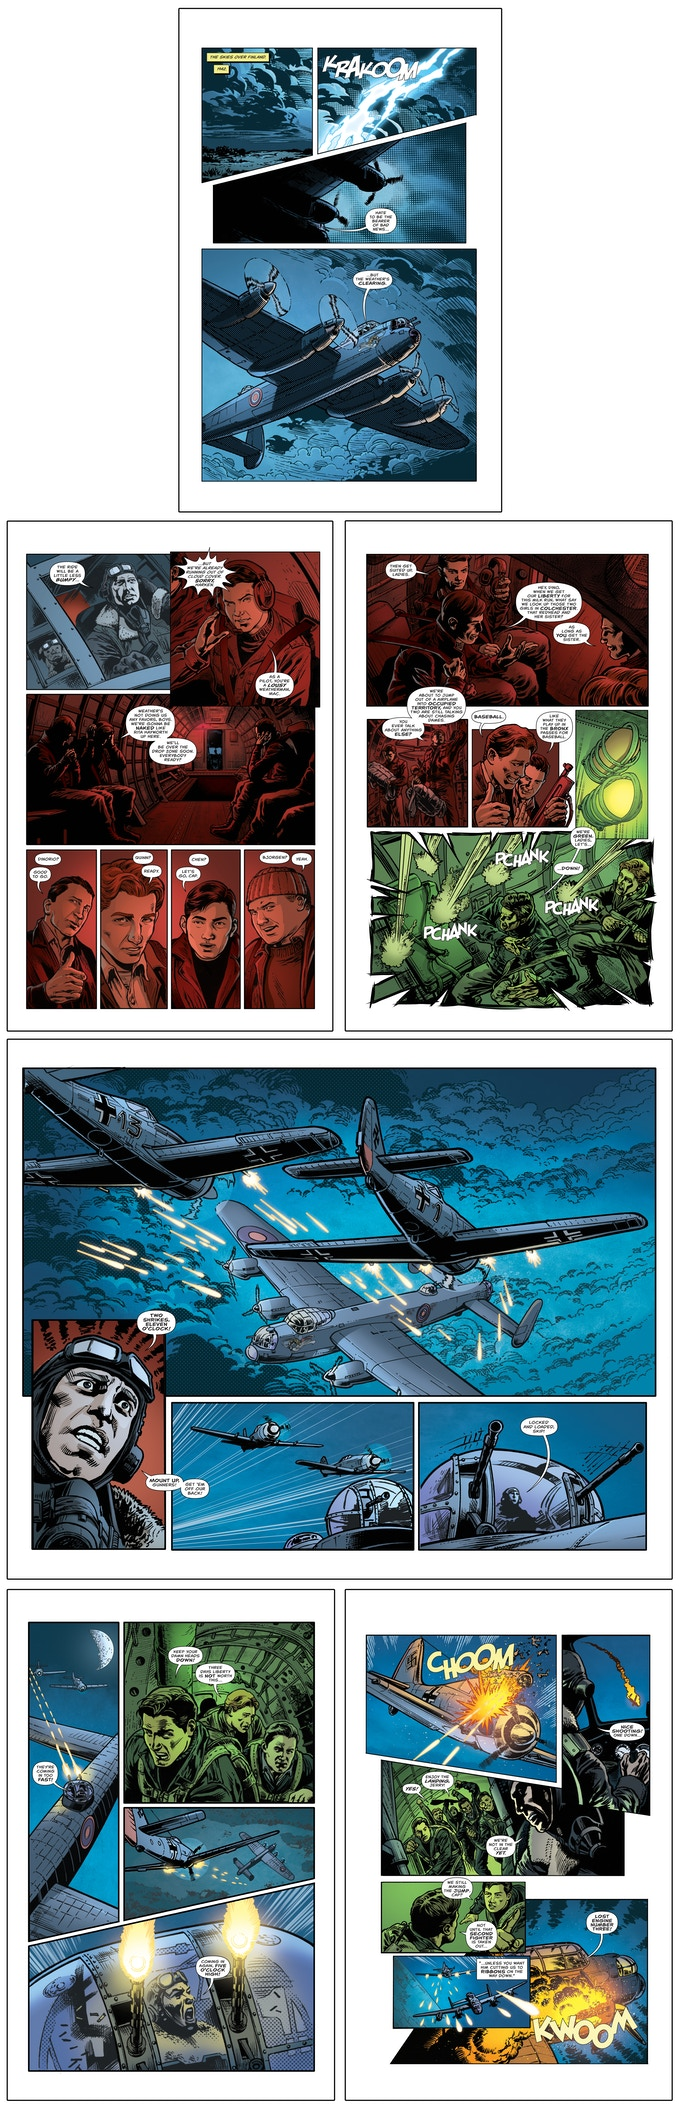 Harken's Raiders Pages 1-7, created by Allen Cordrey, Ron Marz, and Darryl Banks